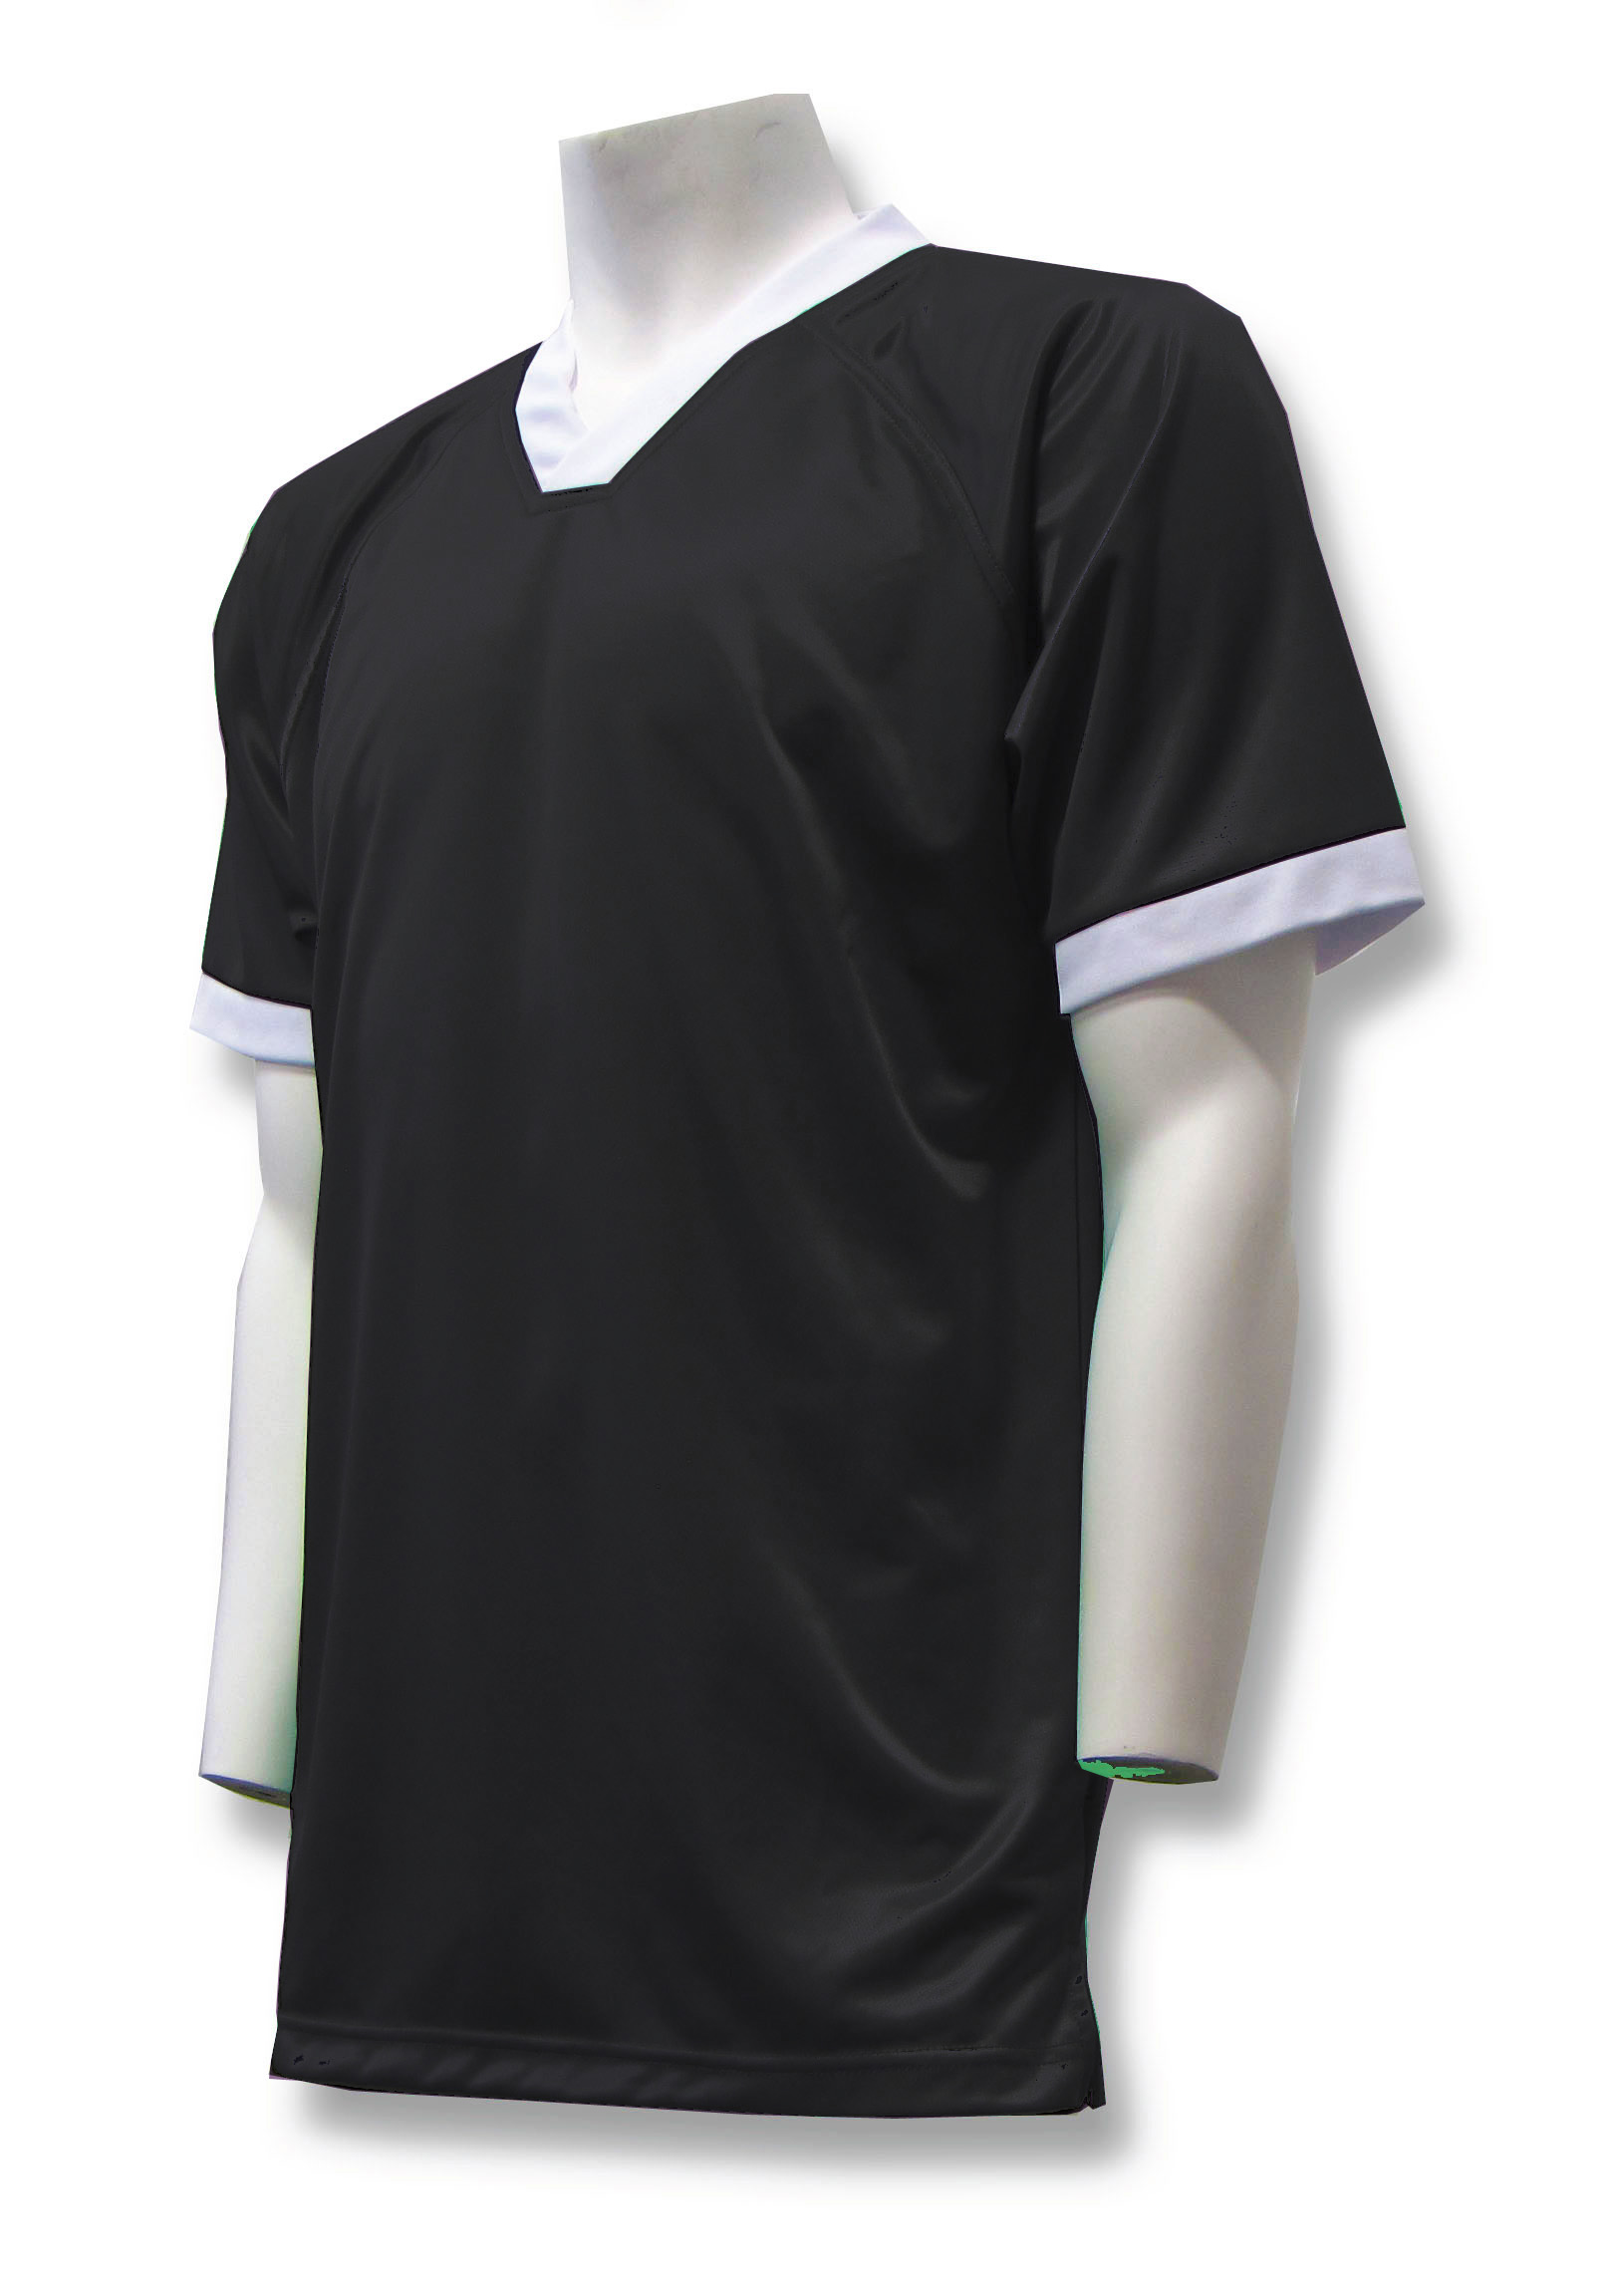 Pioneer soccer jersey in black by Code Four Athletics